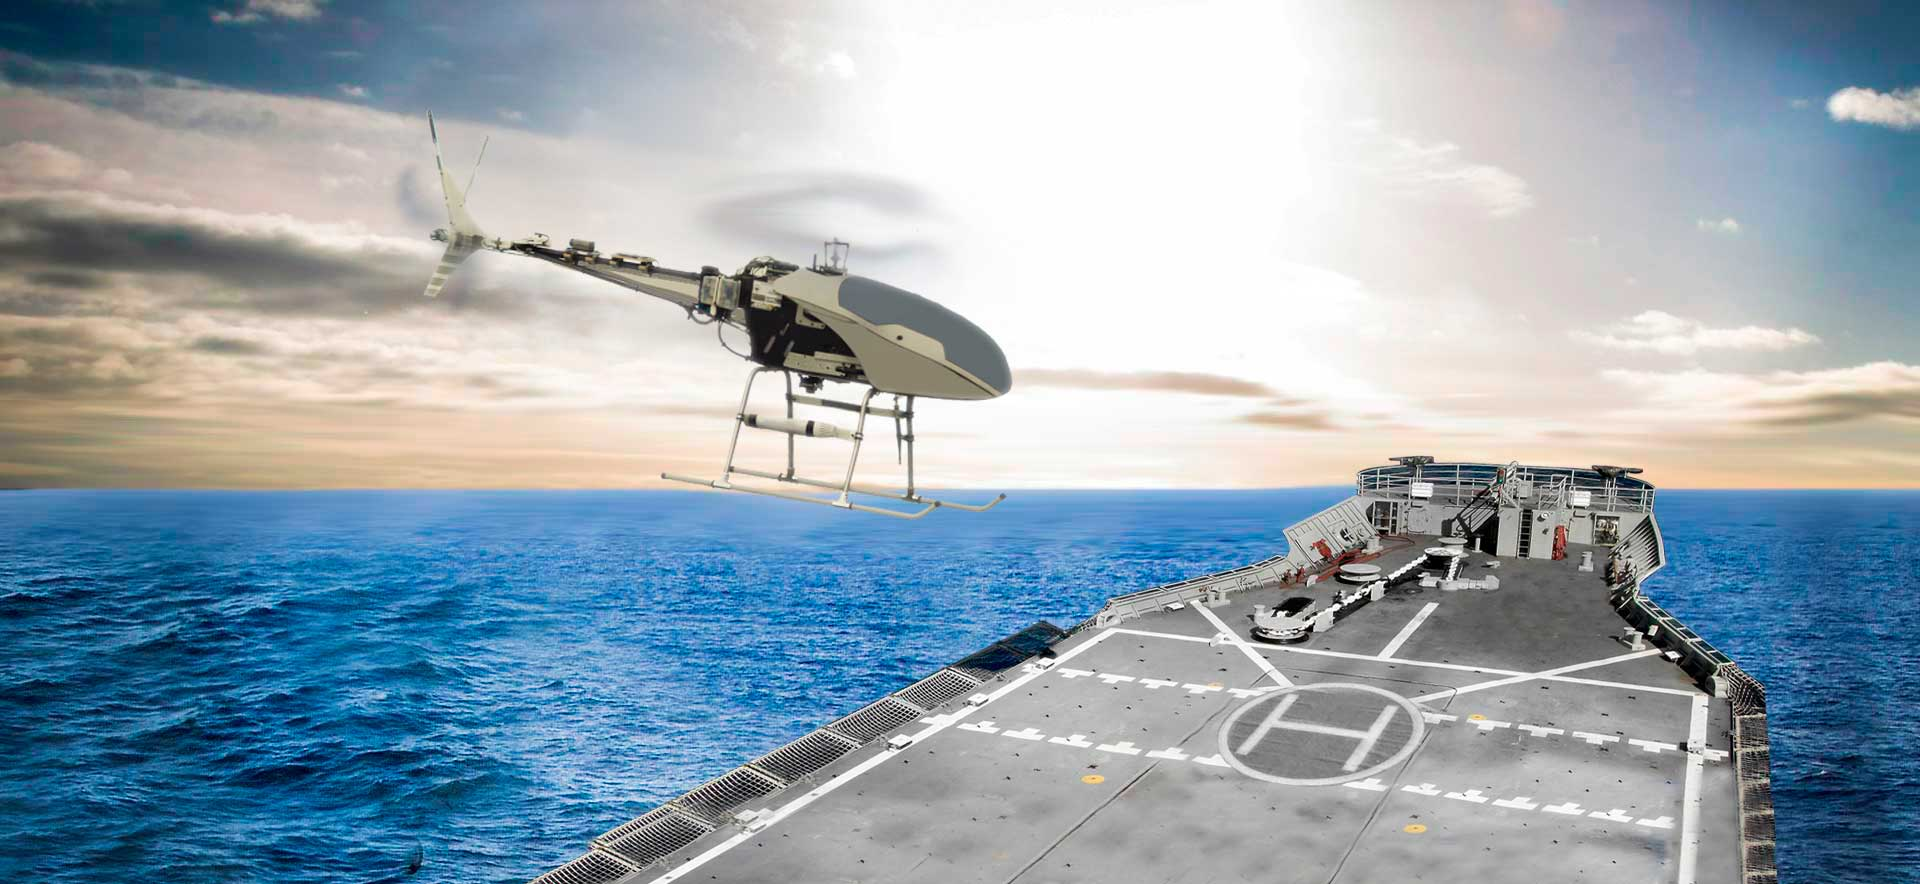 Landing in moving vehicles in GNSS denied environments - sUAS News - The Business of Drones